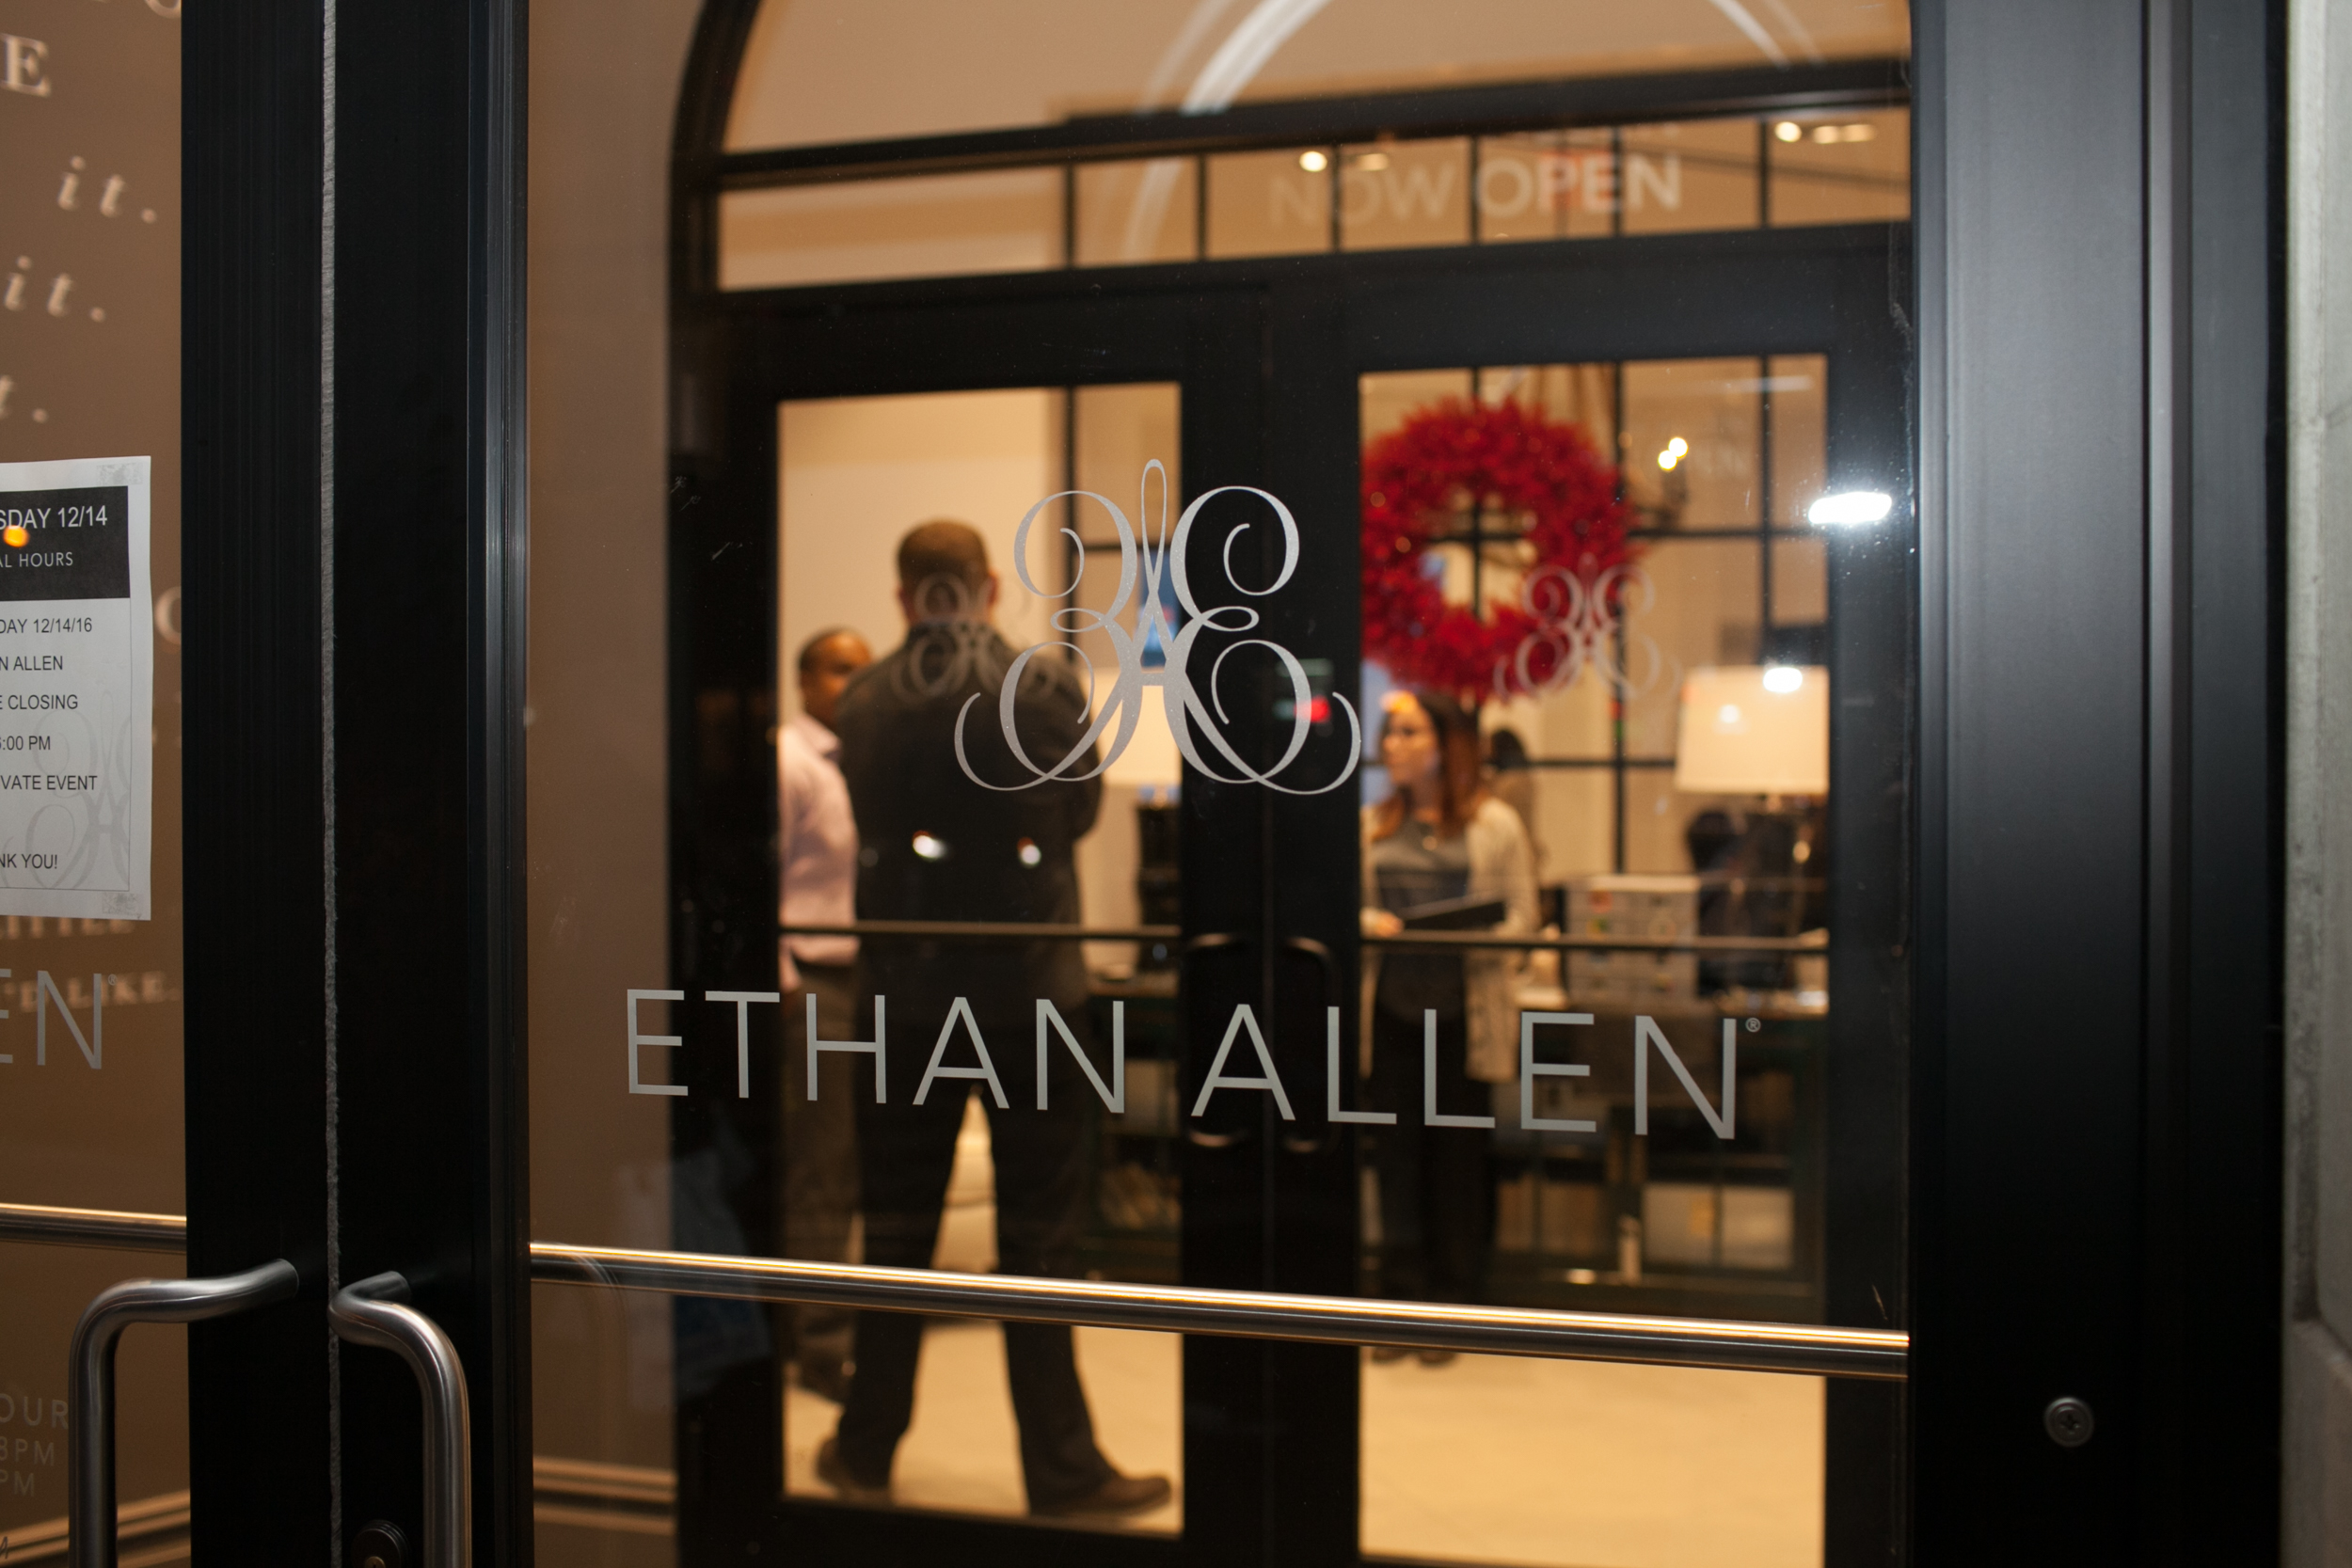 Outside of the Ethan Allen showroom